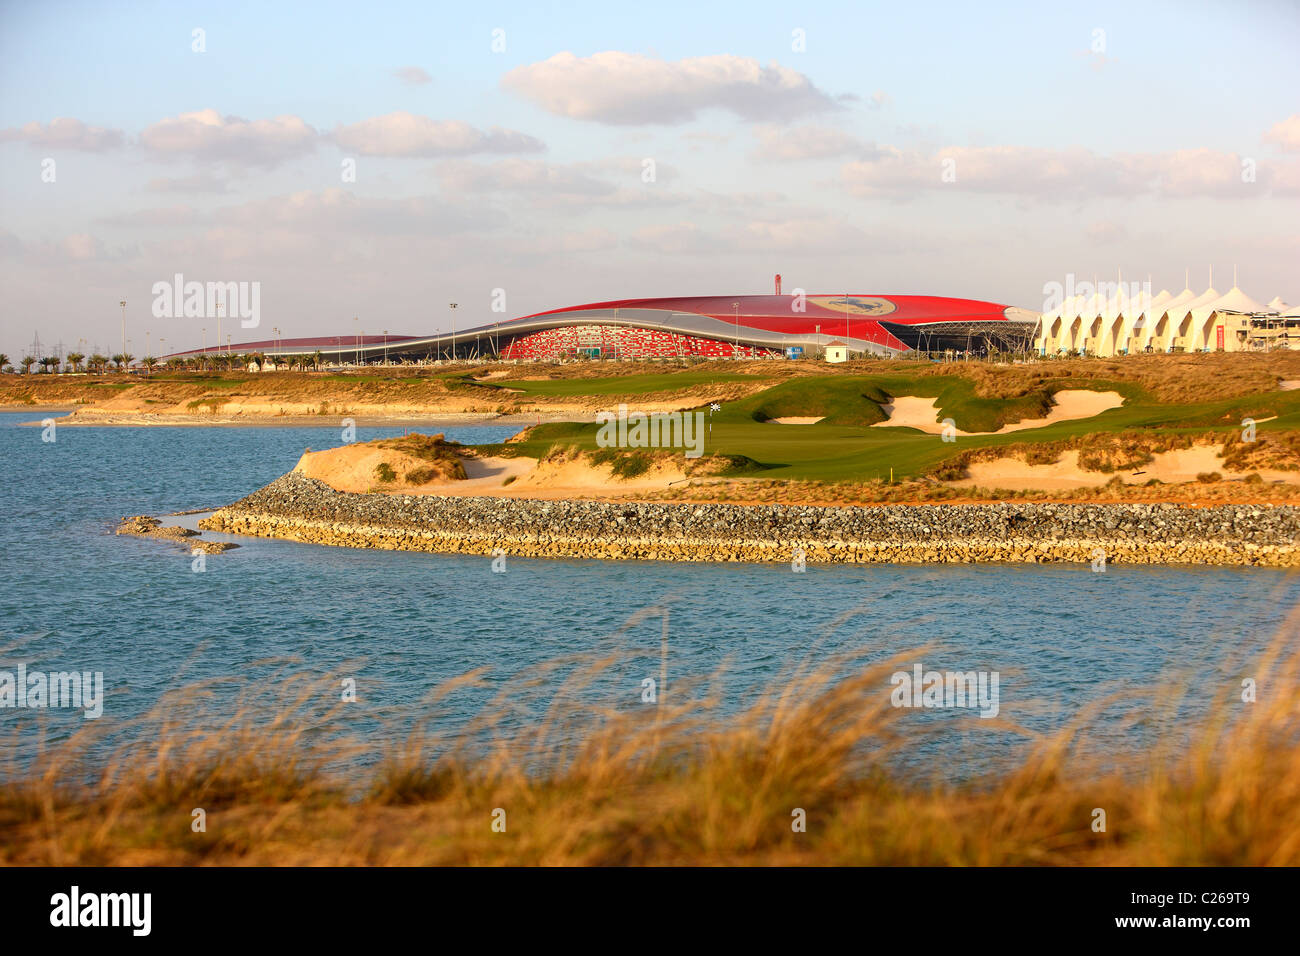 Yas-Links golf course on Yas island, opposite of Abu Dhabi Fromula One race track, a traditional links course. Opened in 2010. Stock Photo